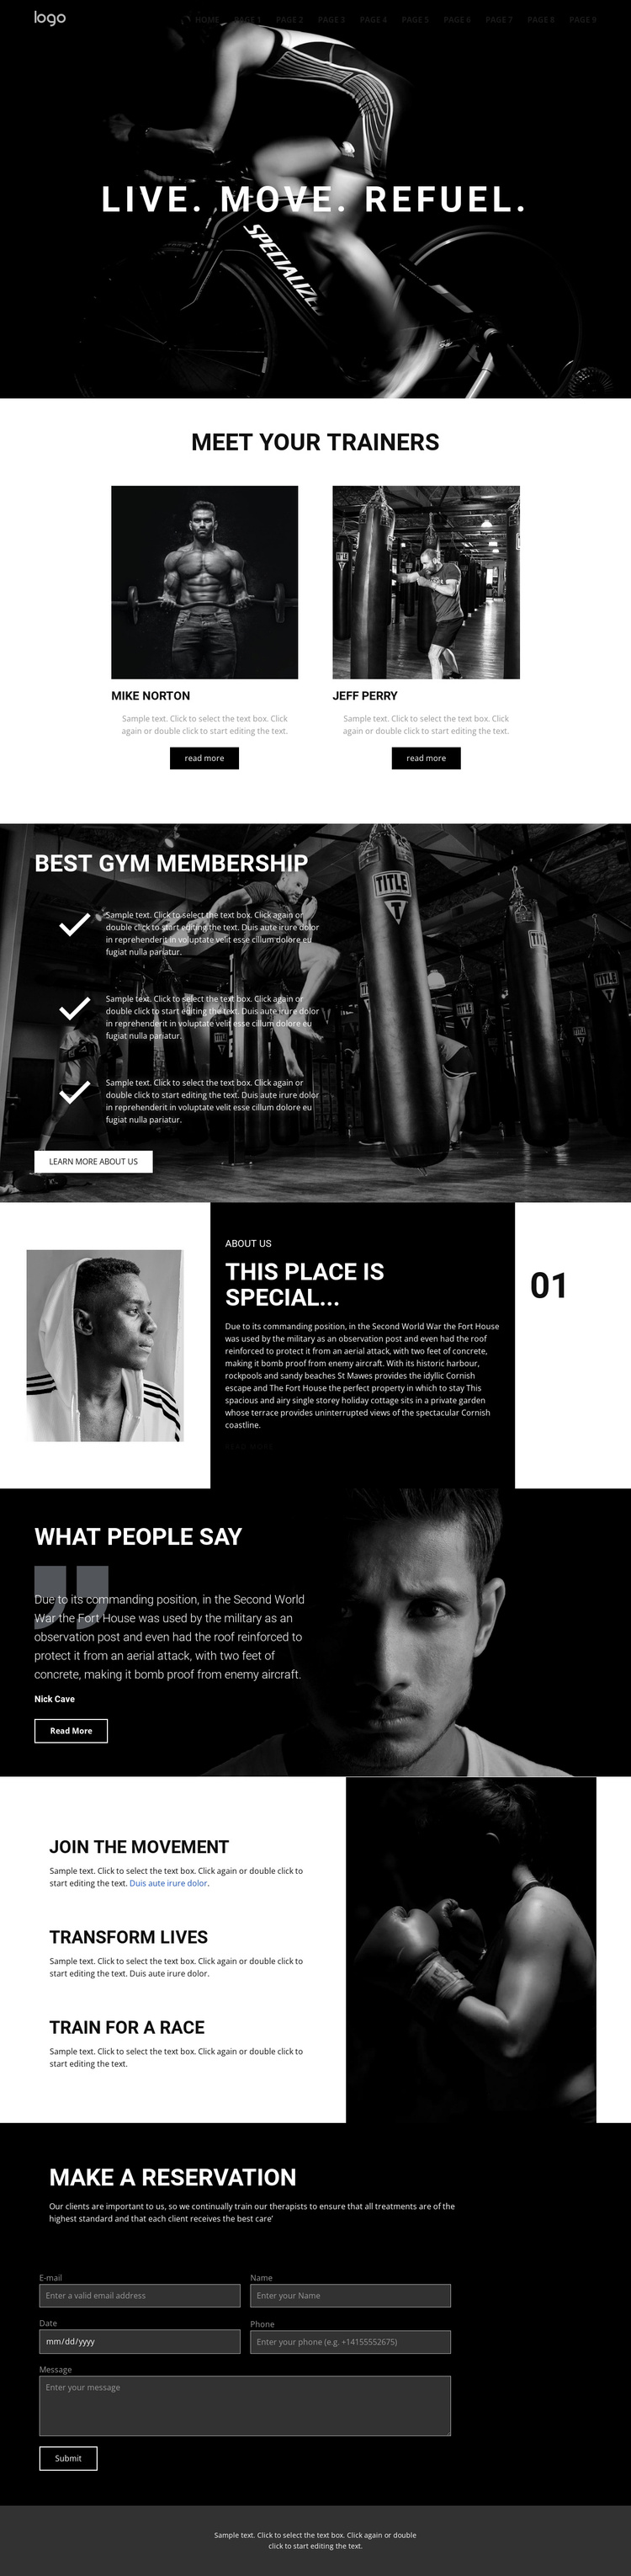 Refuel at power gym Joomla Template